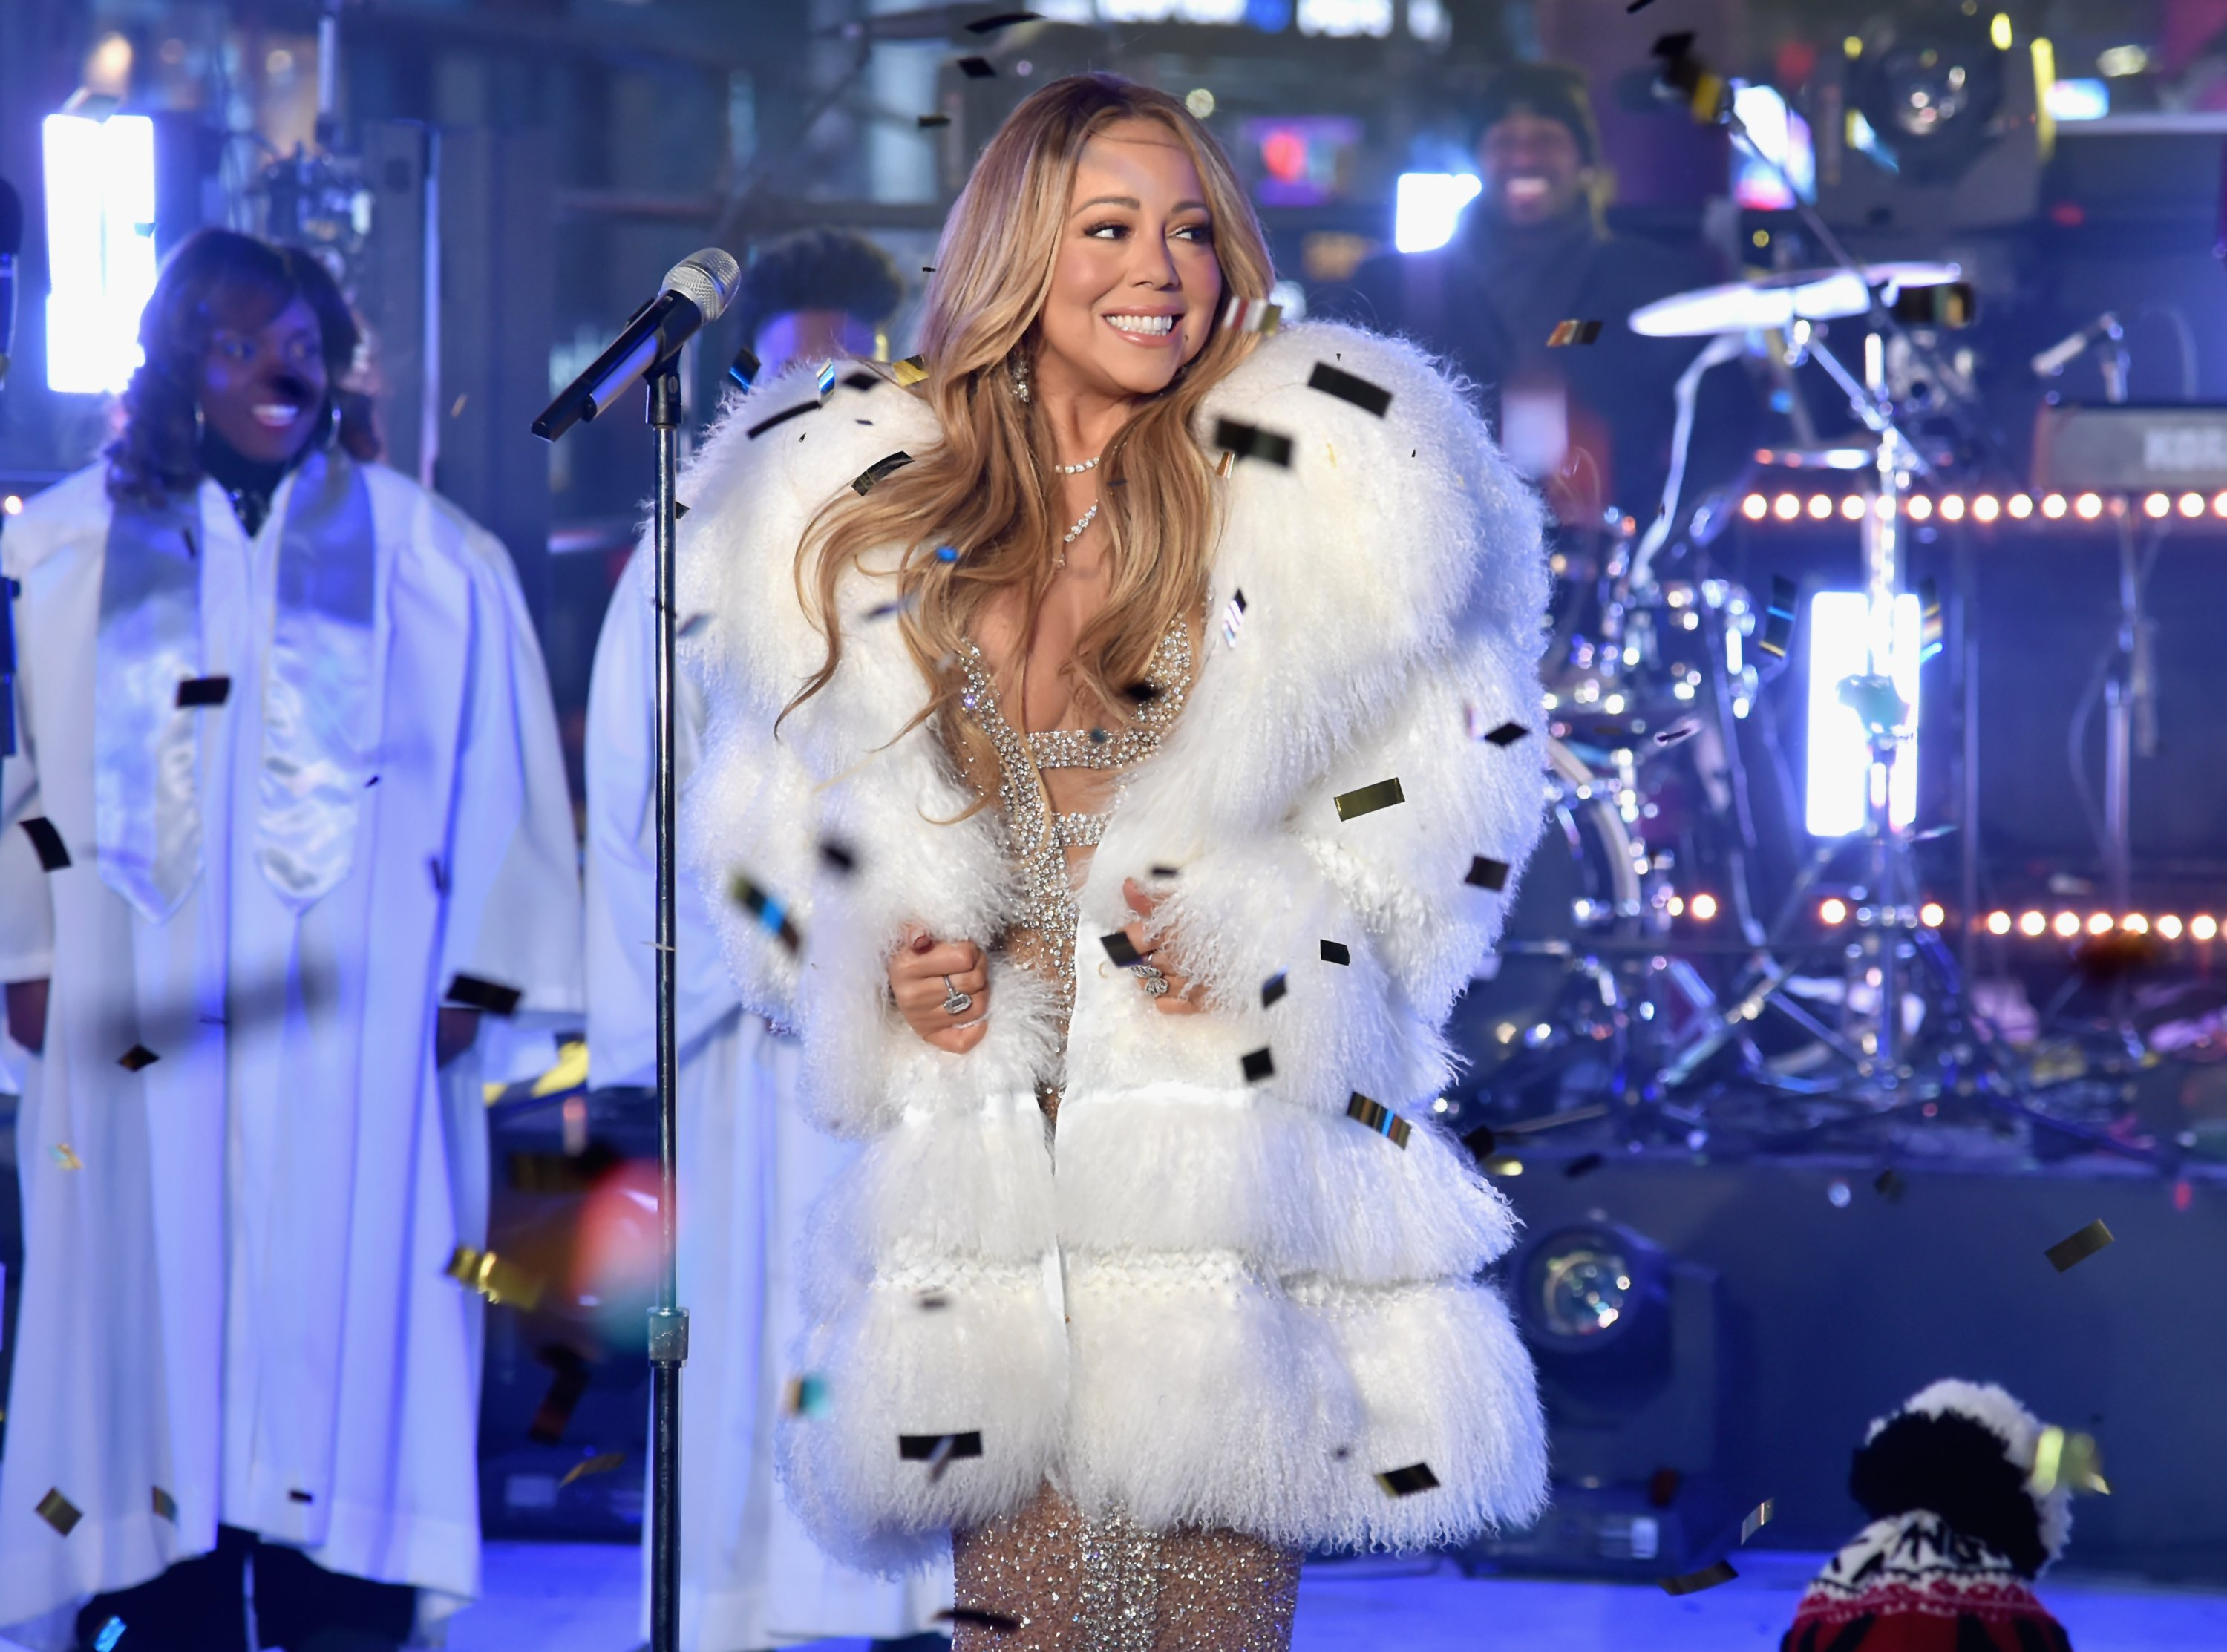 Mariah Carey performs at the Dick Clark's New Year's Rockin' Eve on December 31, 2017. | Source: Getty Images